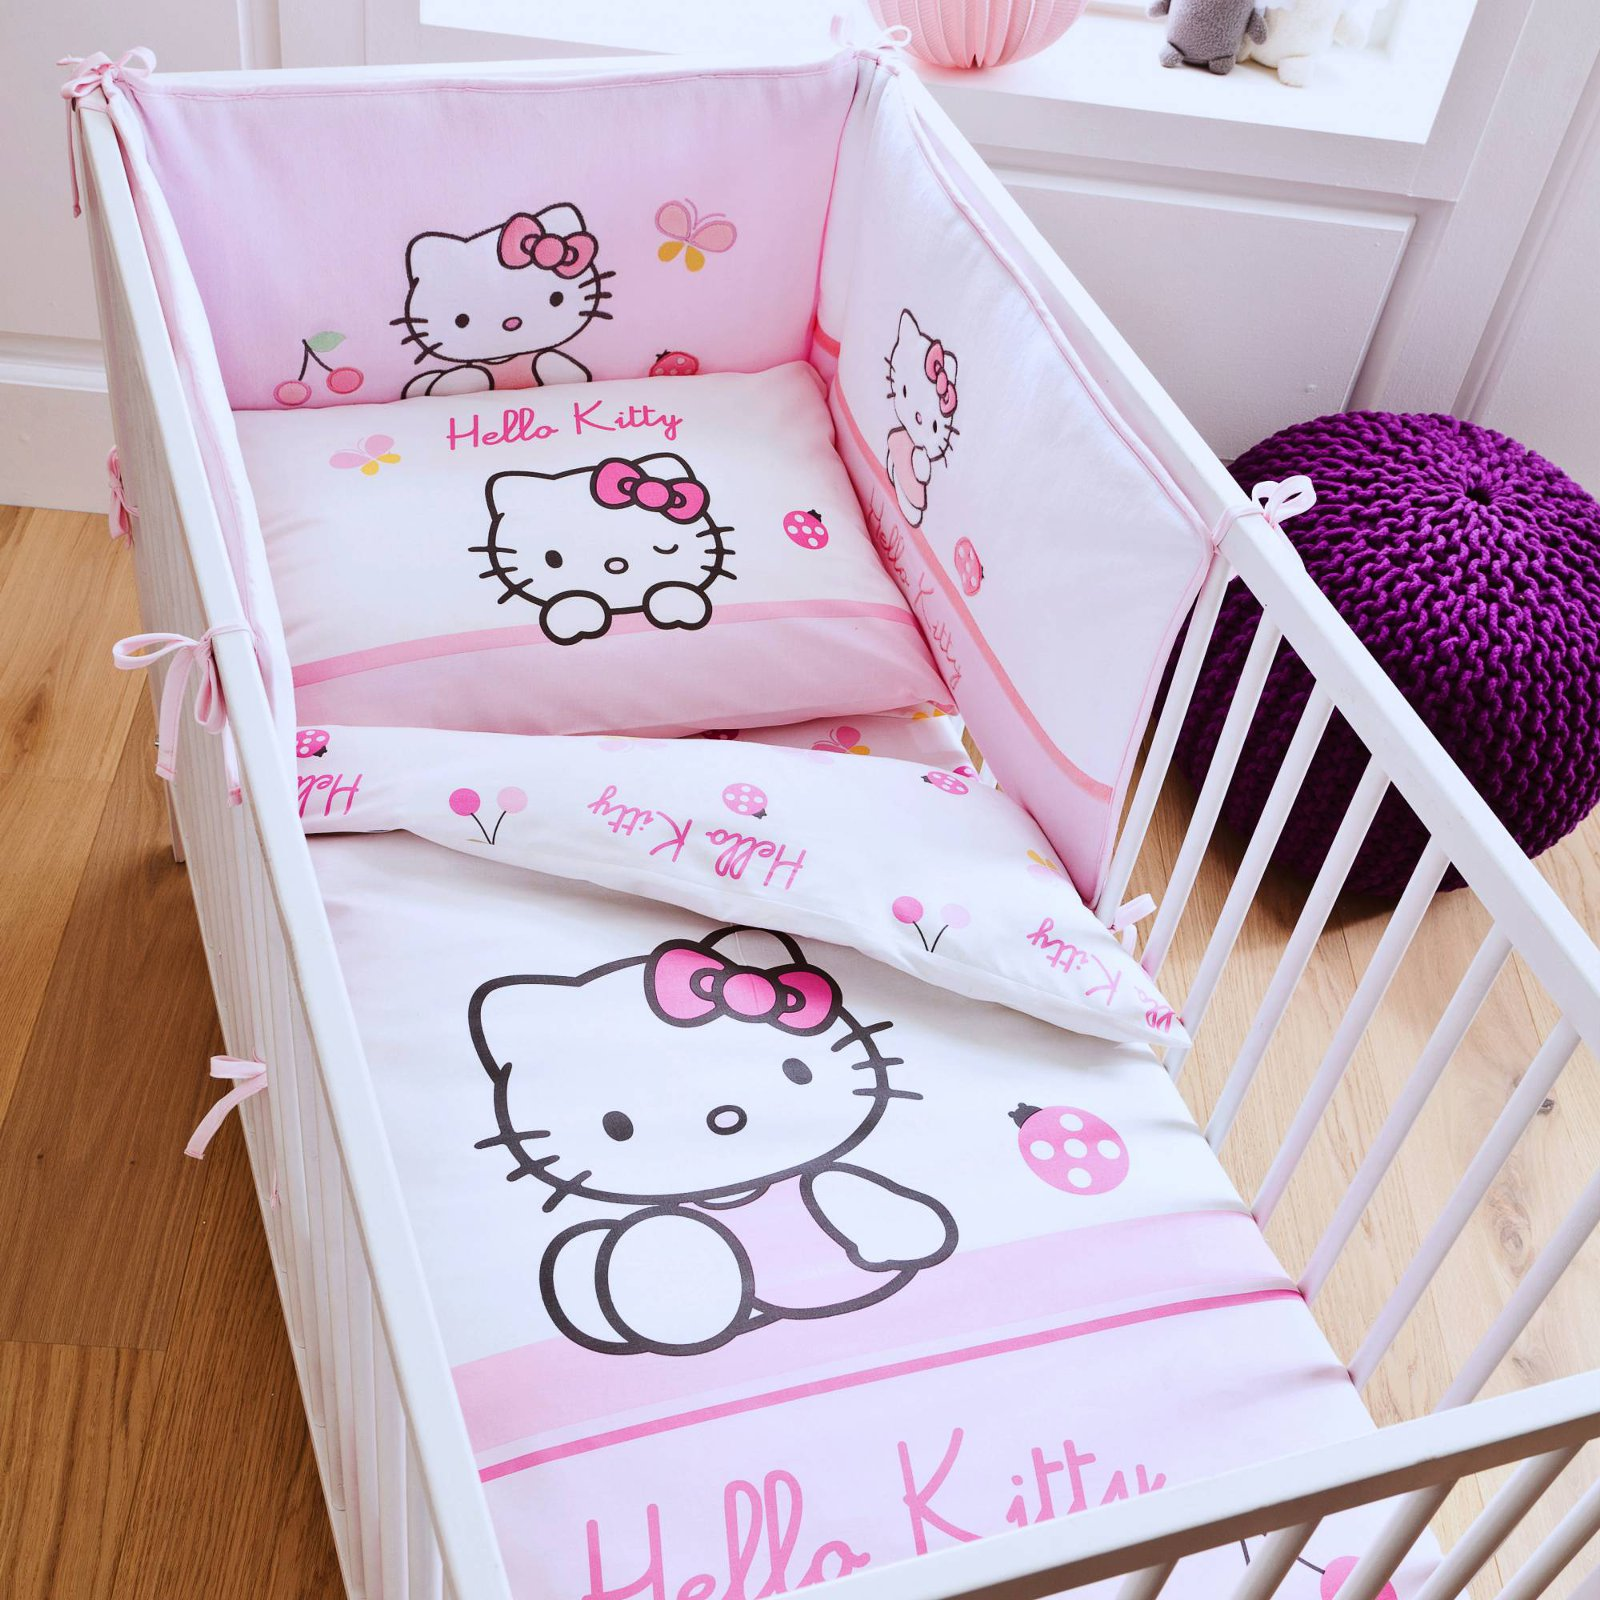 housse de couette hello kitty parure de lit 100 x 135 cm pour petit lit. Black Bedroom Furniture Sets. Home Design Ideas